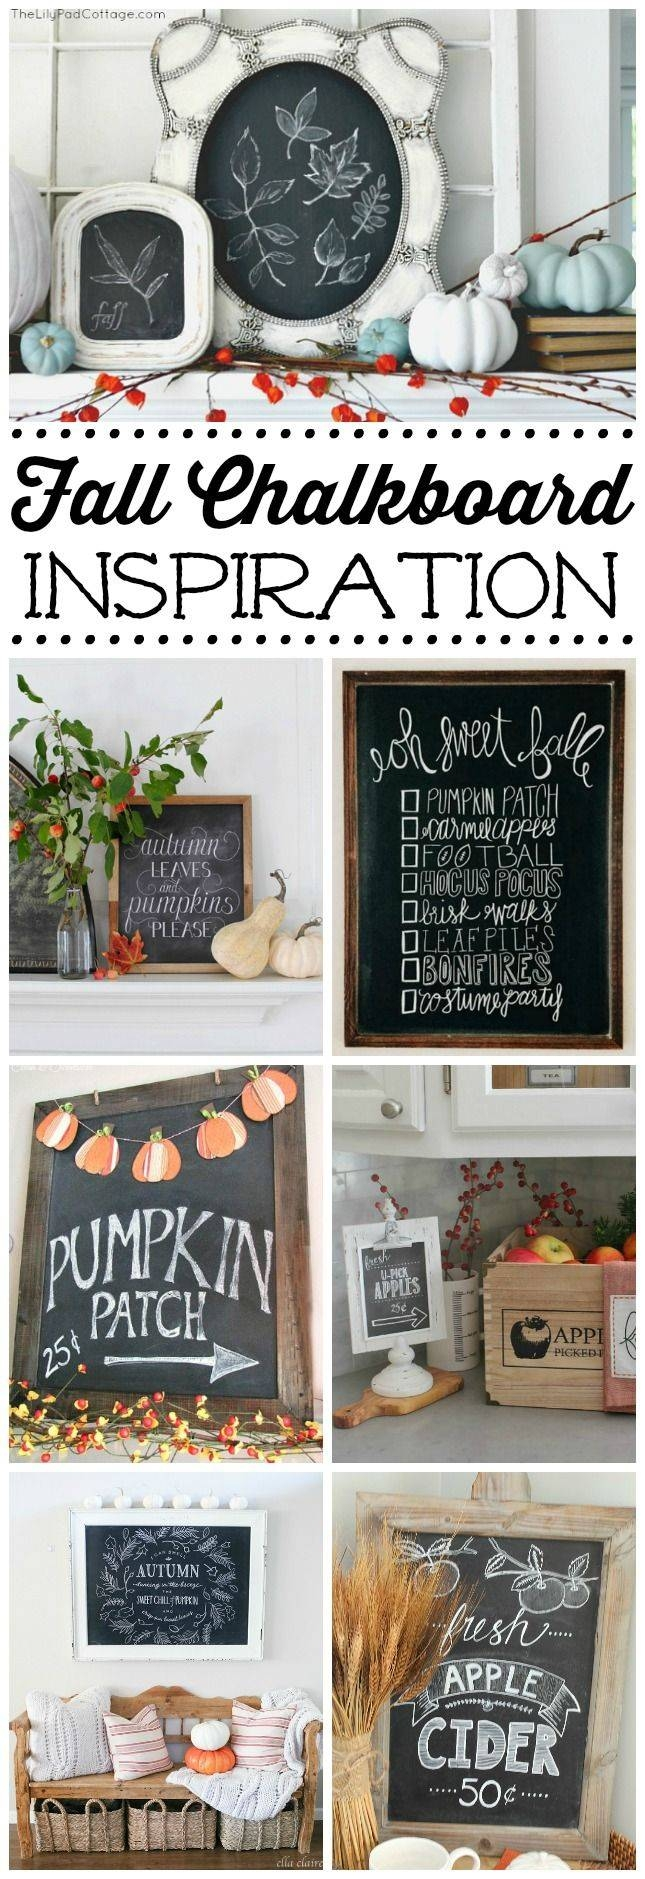 25+ Unique Fall Chalkboard Ideas On Pinterest | Fall Chalkboard Throughout 2018 Autumn Inspired Wall Art (View 4 of 25)